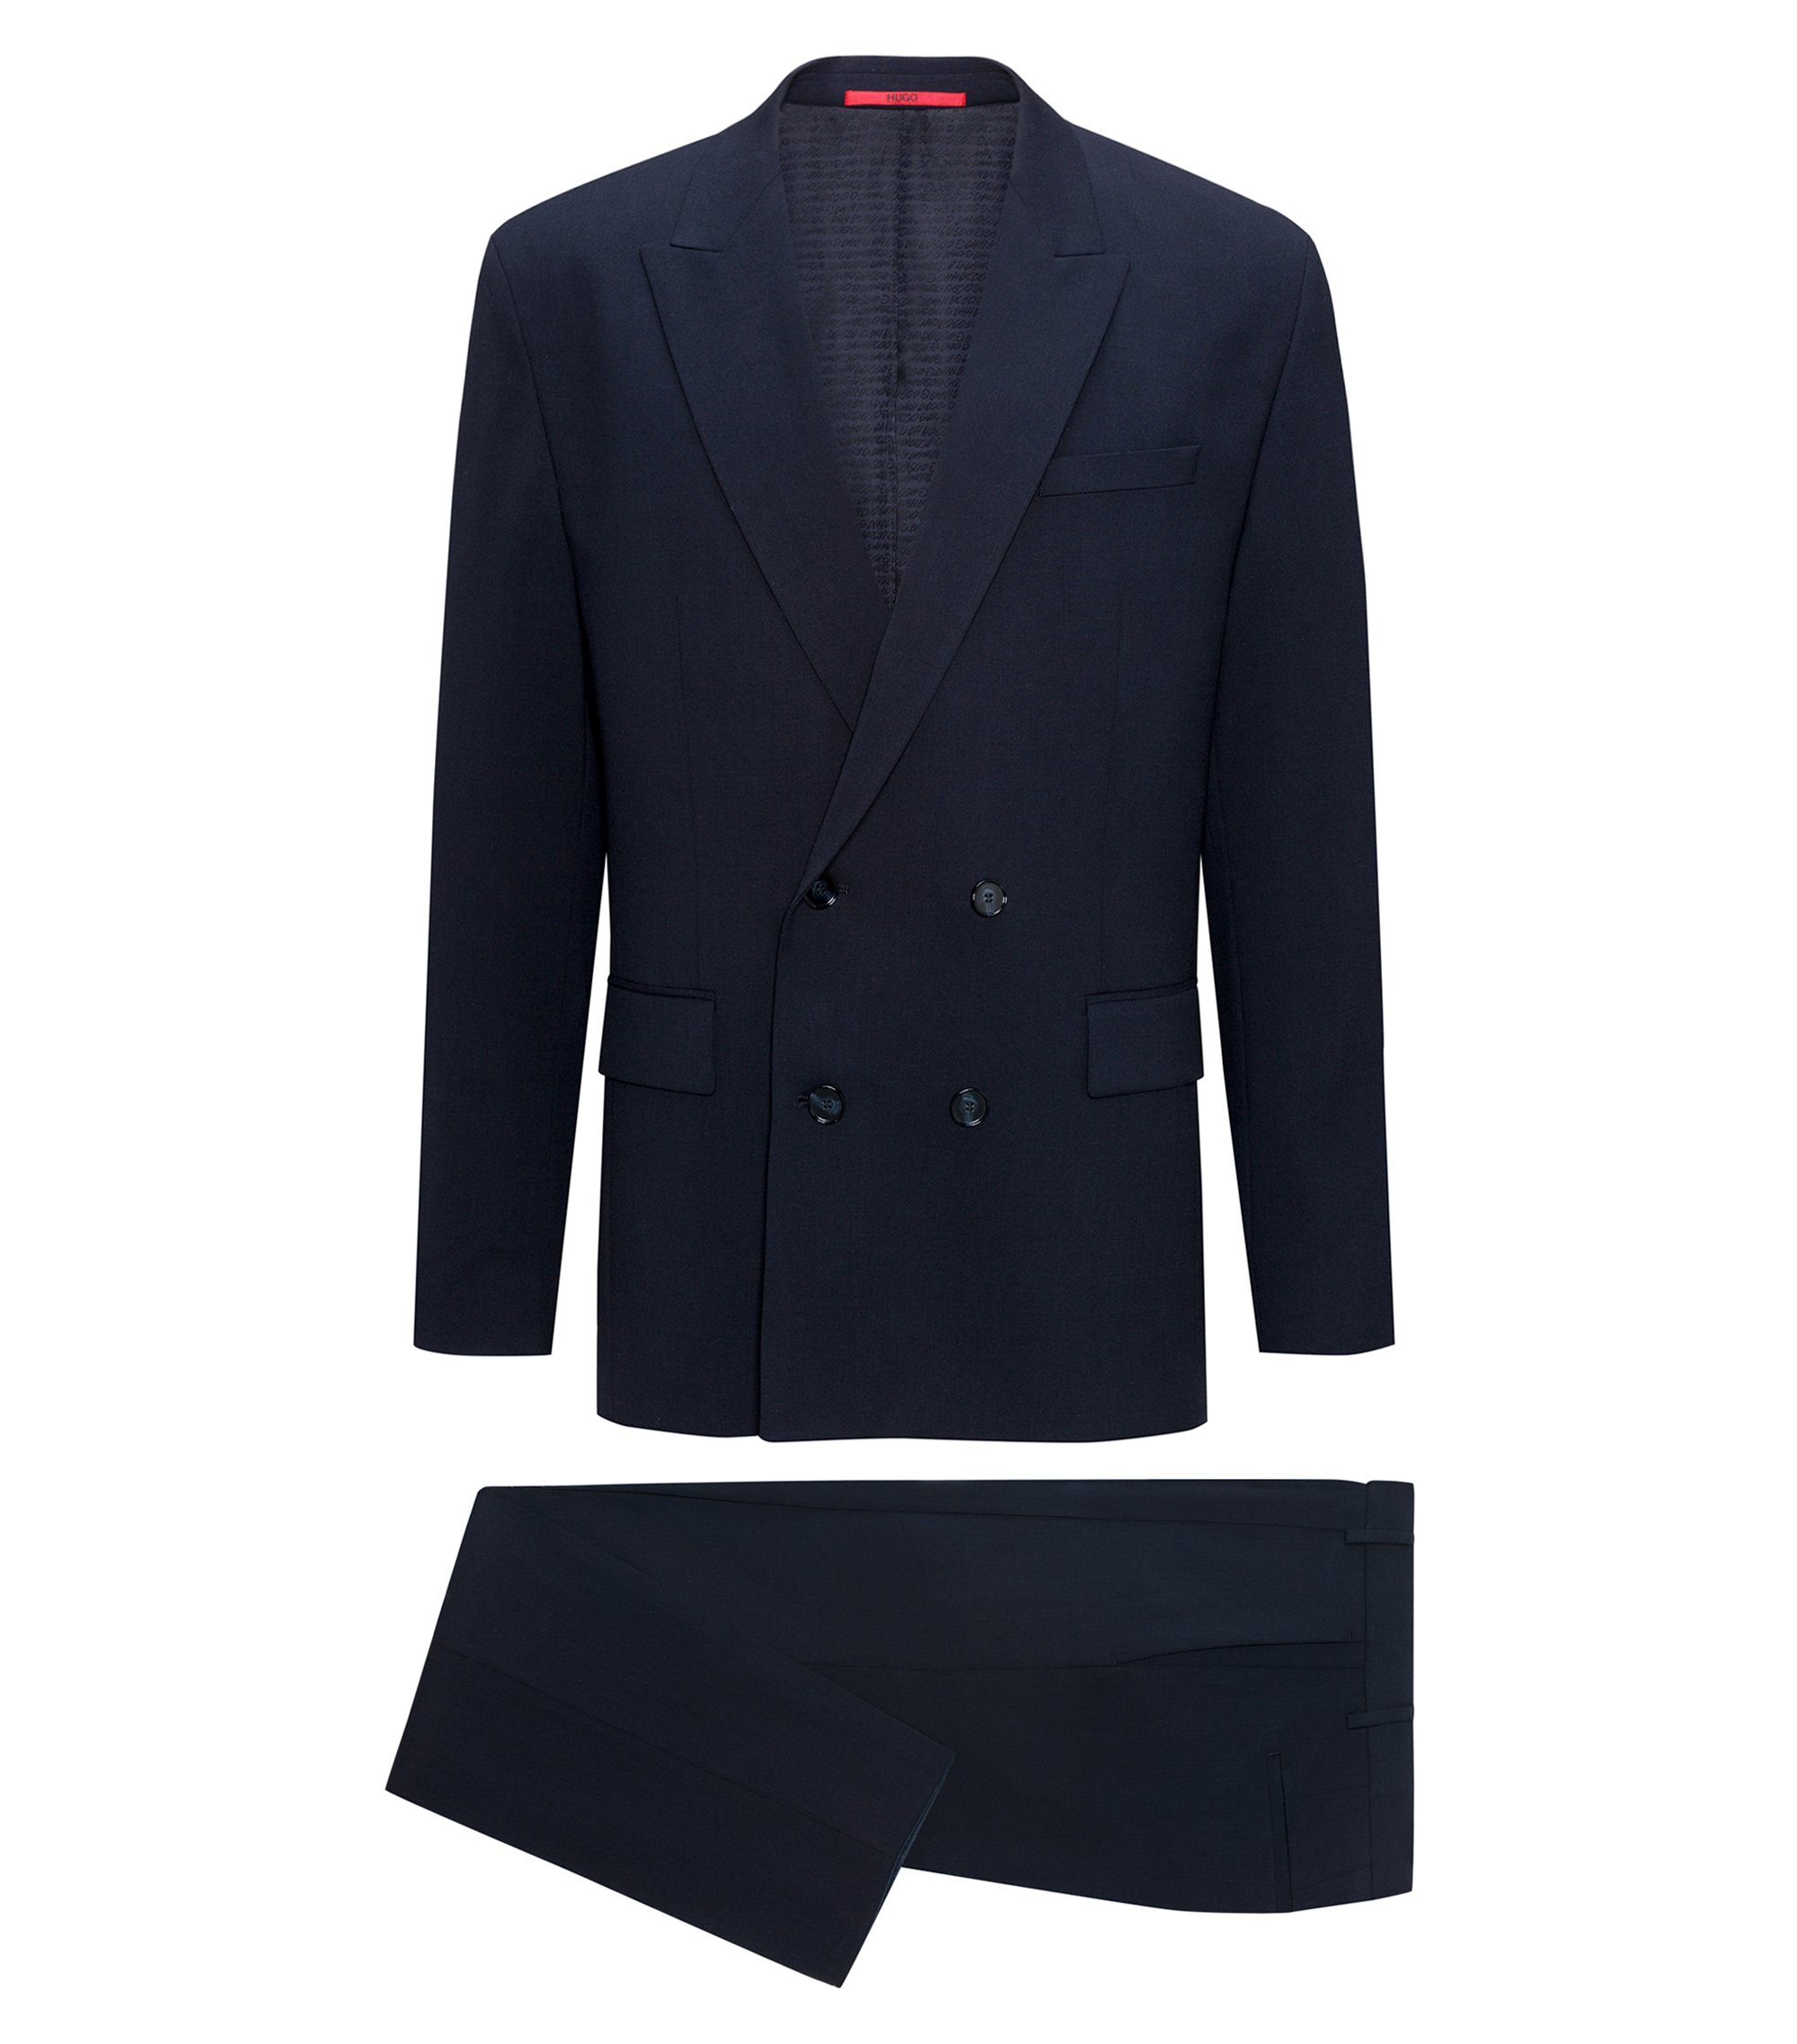 Virgin Wool Cotton Suit, Slim Fit | Ulan/Fabo, Dark Blue